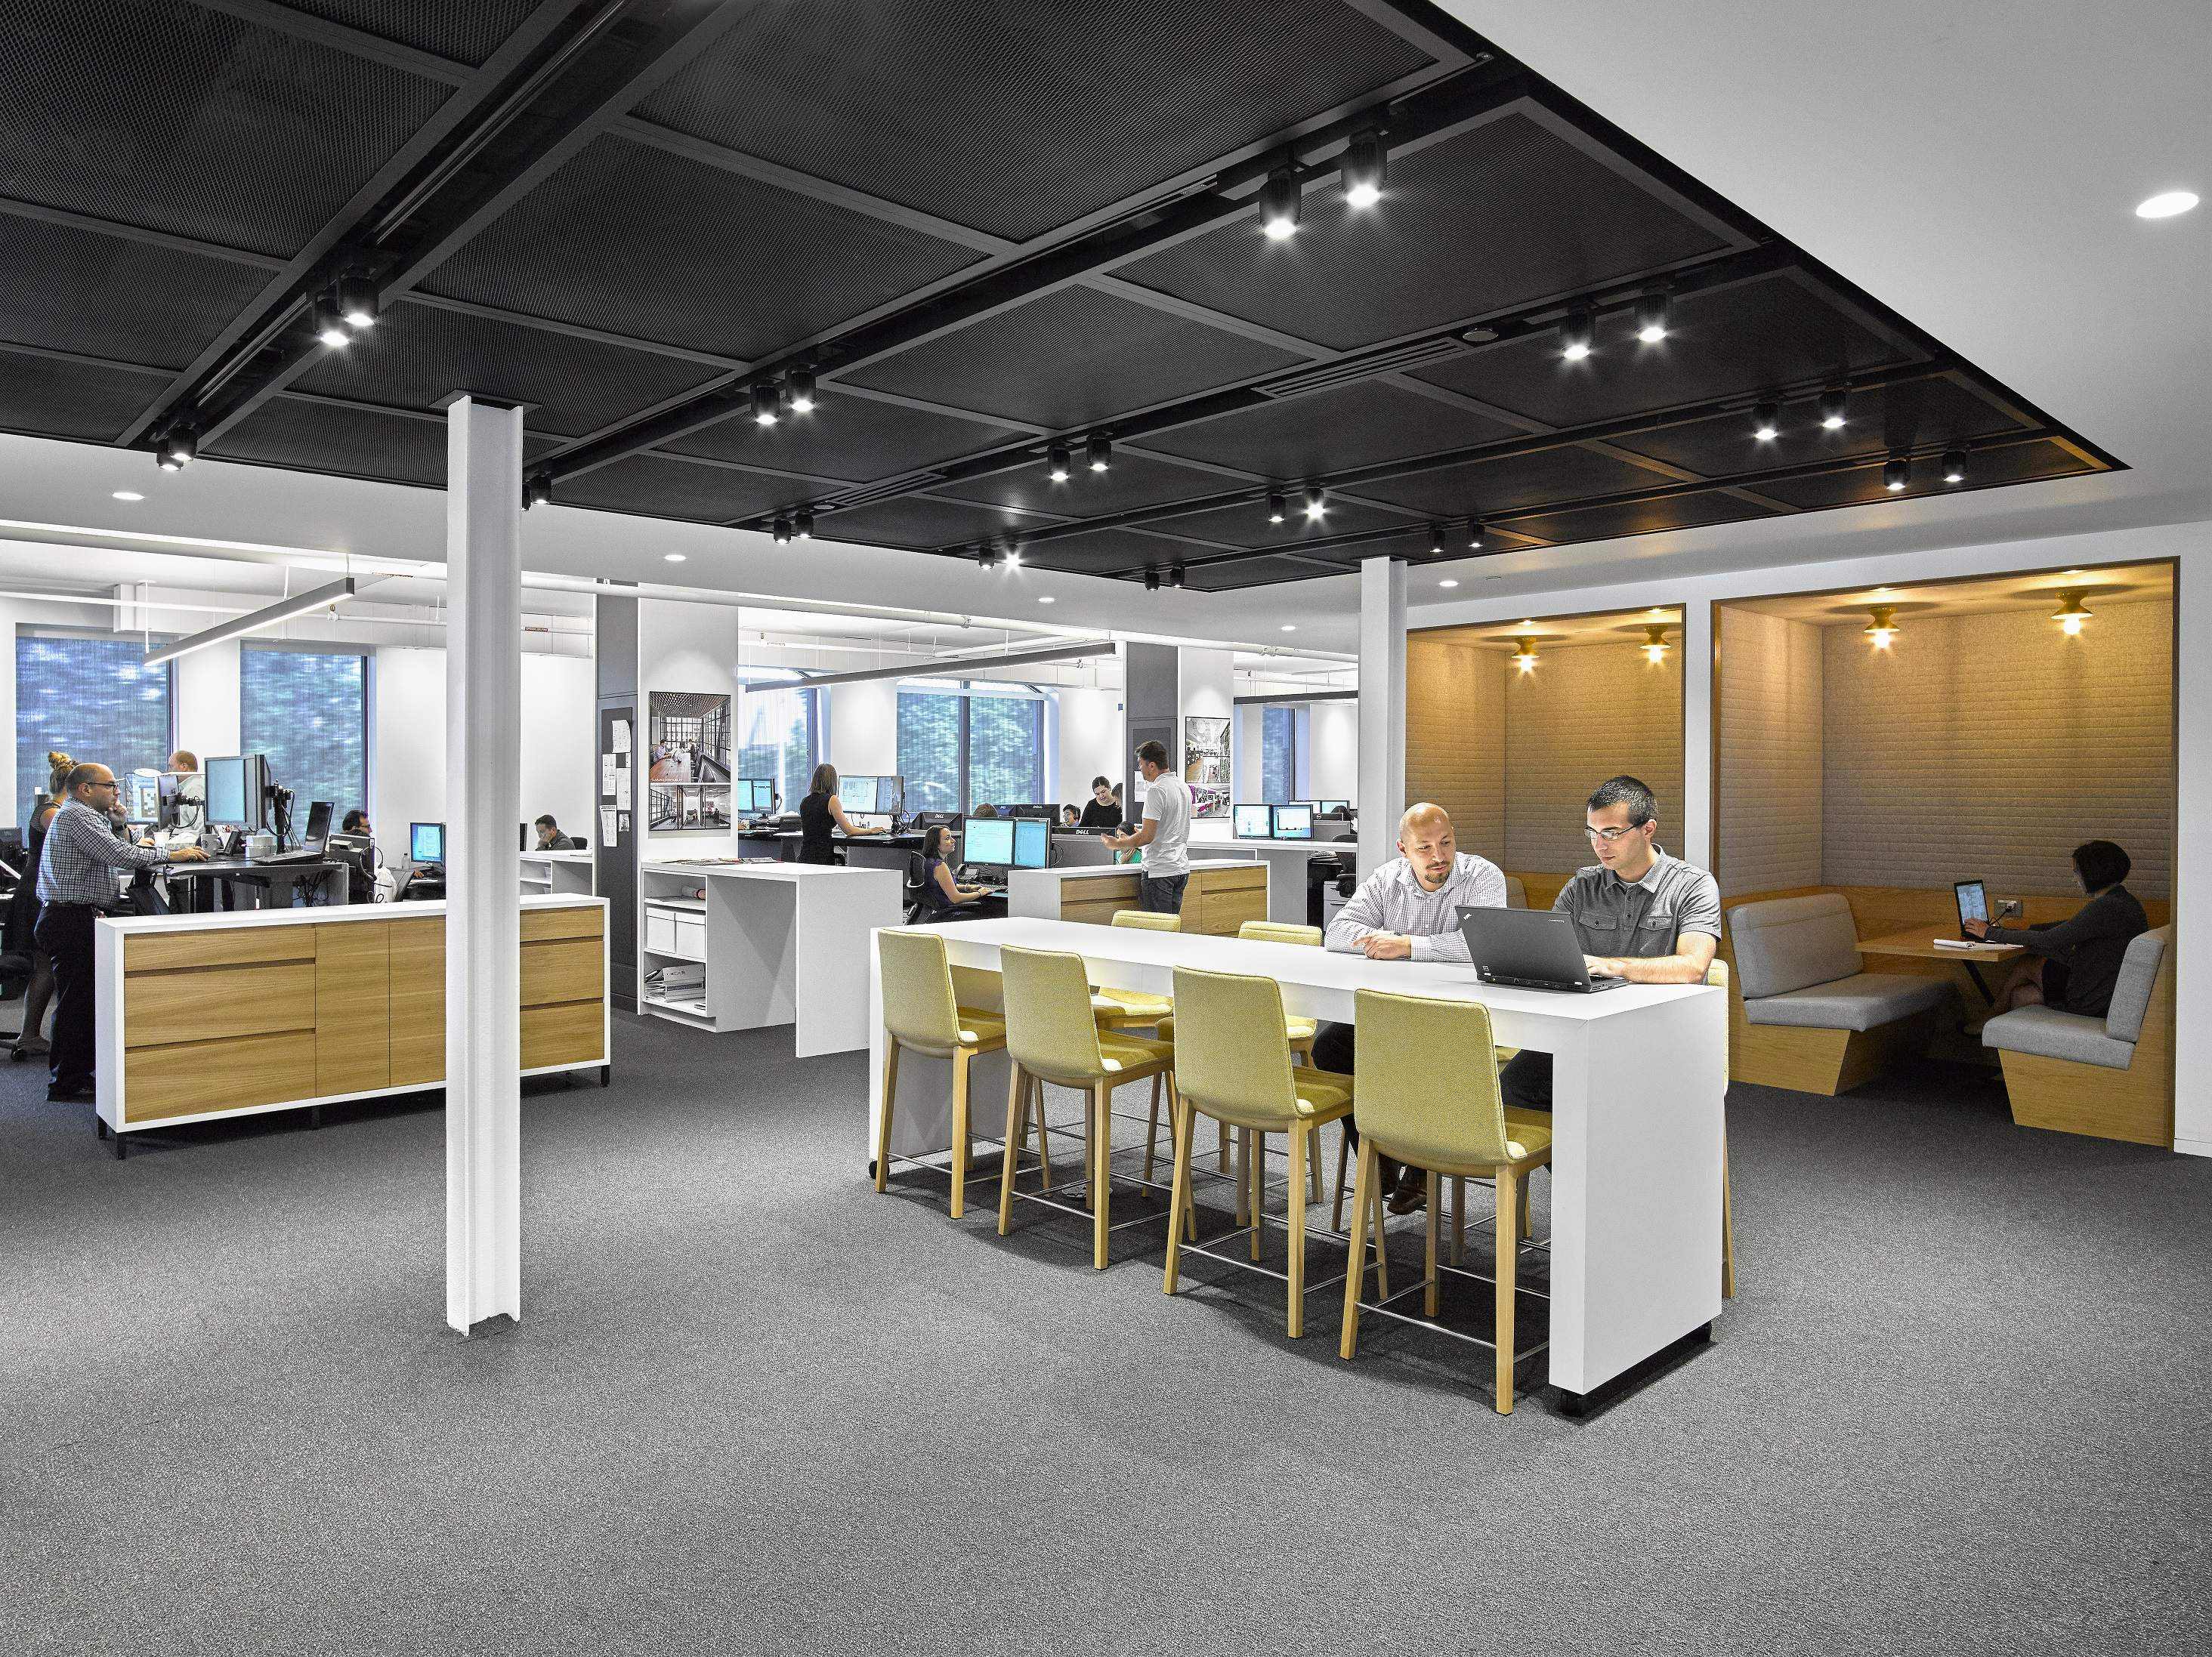 Collaboration comes in many forms at Gensler's refurbished office with choices of where to work.